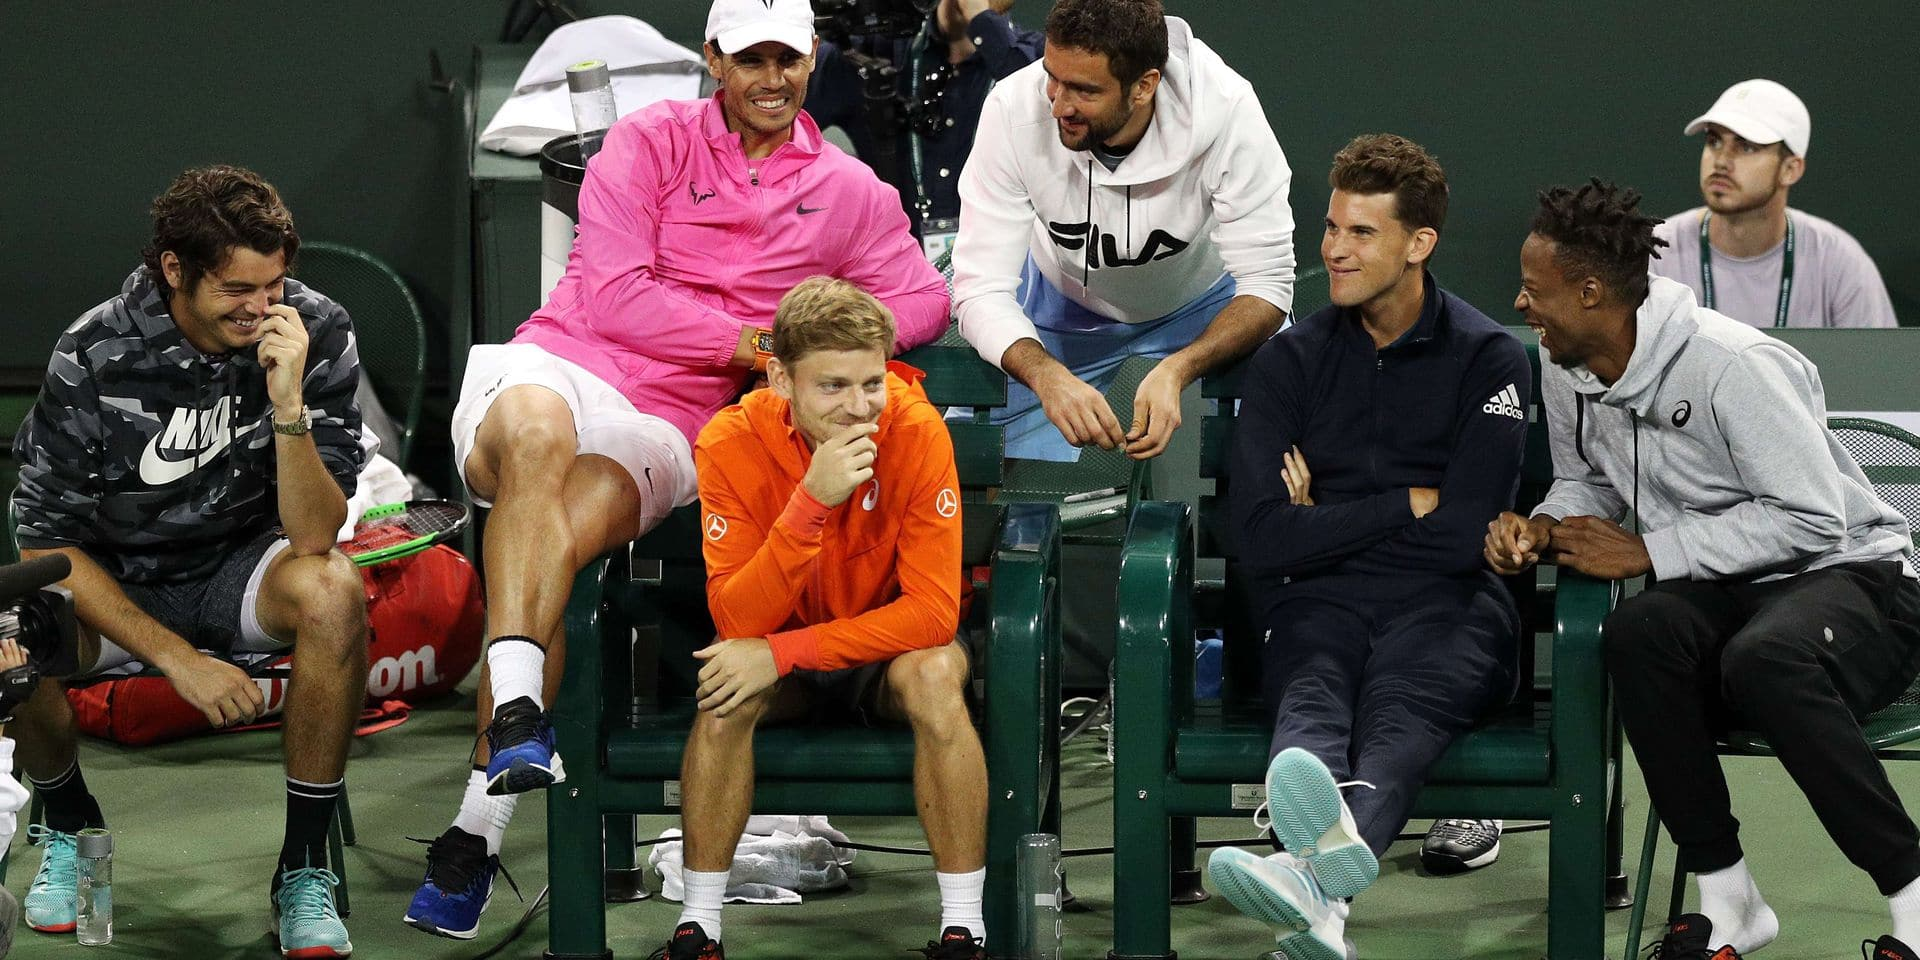 INDIAN WELLS, CALIFORNIA - MARCH 05: Taylor Fritz of the United States, Rafael Nadal of Spain, David Goffin of Belgium, Marin Cilic of Croatia, Dominic Thiem of Austria and Gael Monfils of France share a moment during the the final of the Eisenhower Cup, a Tie Break Tens event, on Day 2 of the BNP Paribas Open at the Indian Wells Tennis Garden on March 05, 2019 in Indian Wells, California. Yong Teck Lim/Getty Images/AFP == FOR NEWSPAPERS, INTERNET, TELCOS & TELEVISION USE ONLY ==